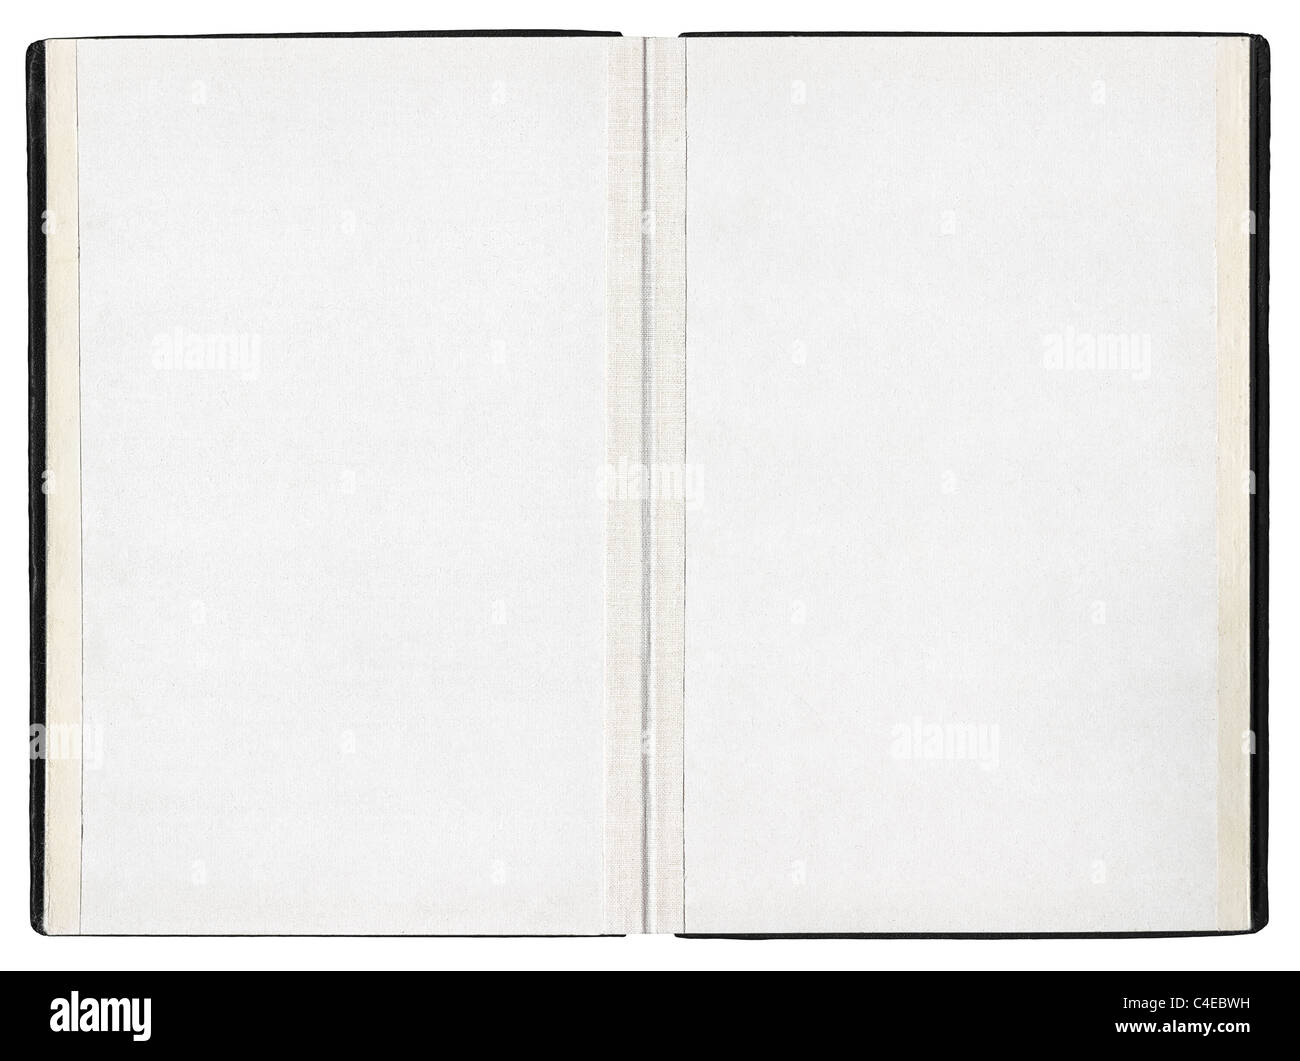 Open book on white background - Stock Image